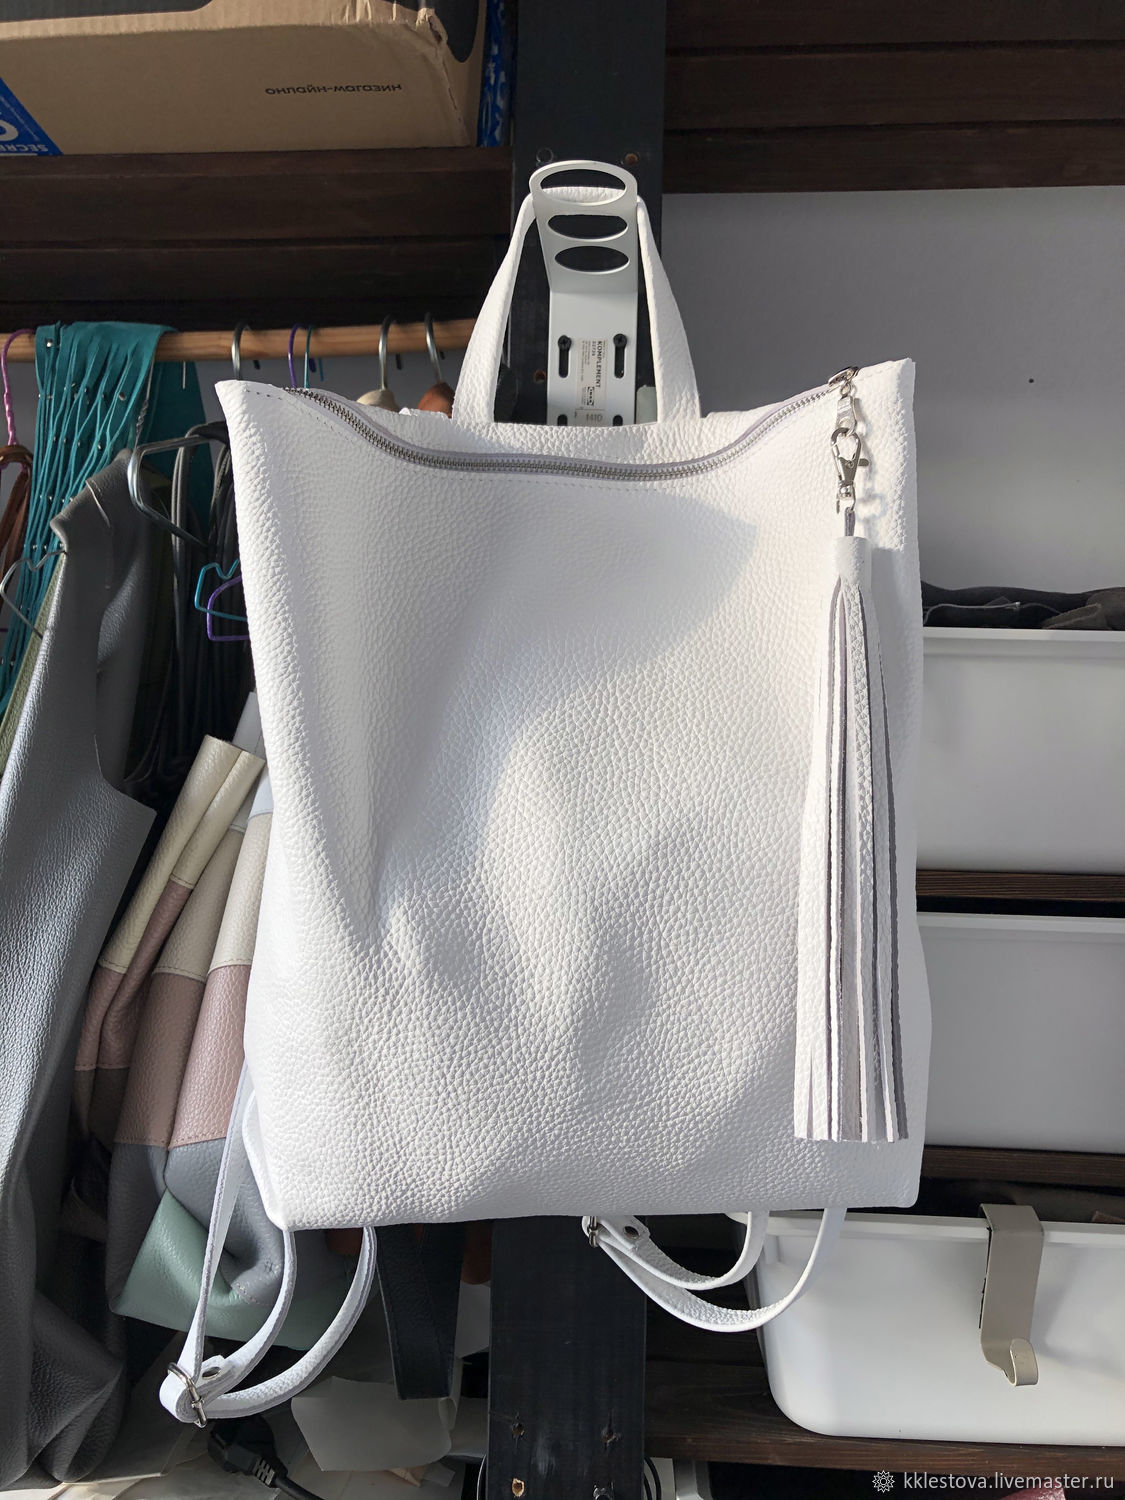 backpack white leather urban medium with pockets and cosmetic bag, Backpacks, Moscow,  Фото №1